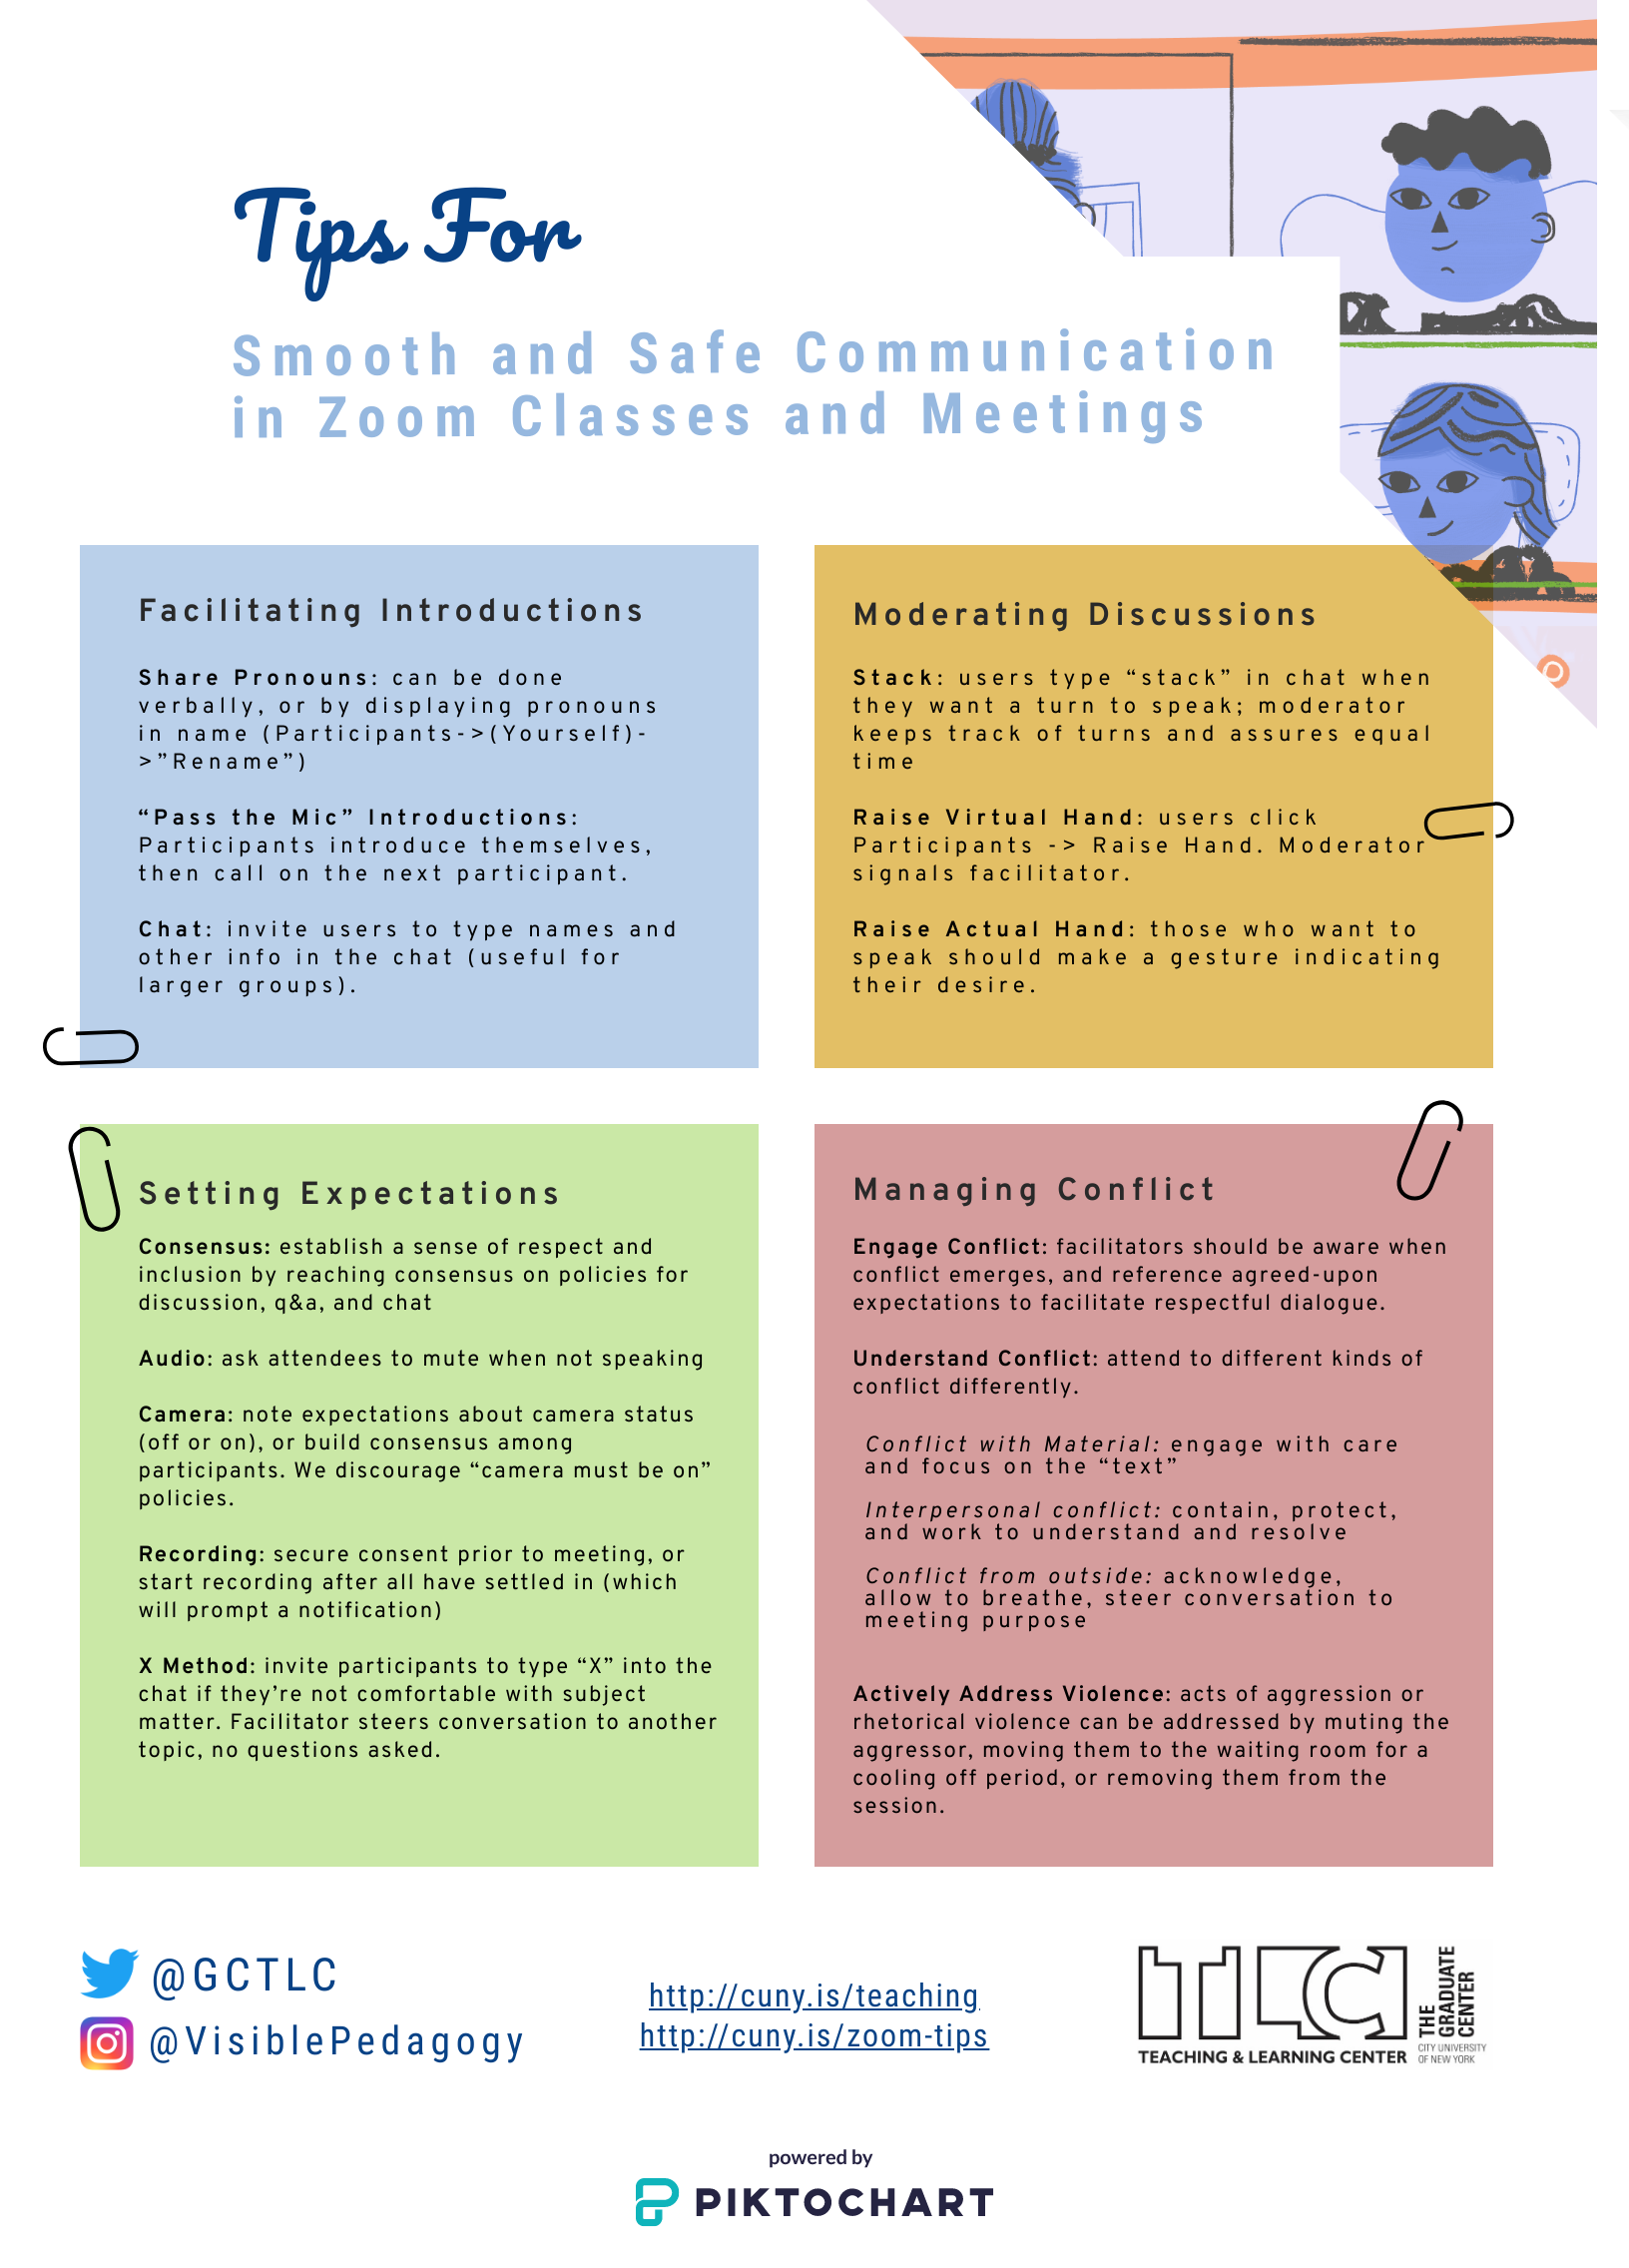 Tips for a Smooth ZOOM Class